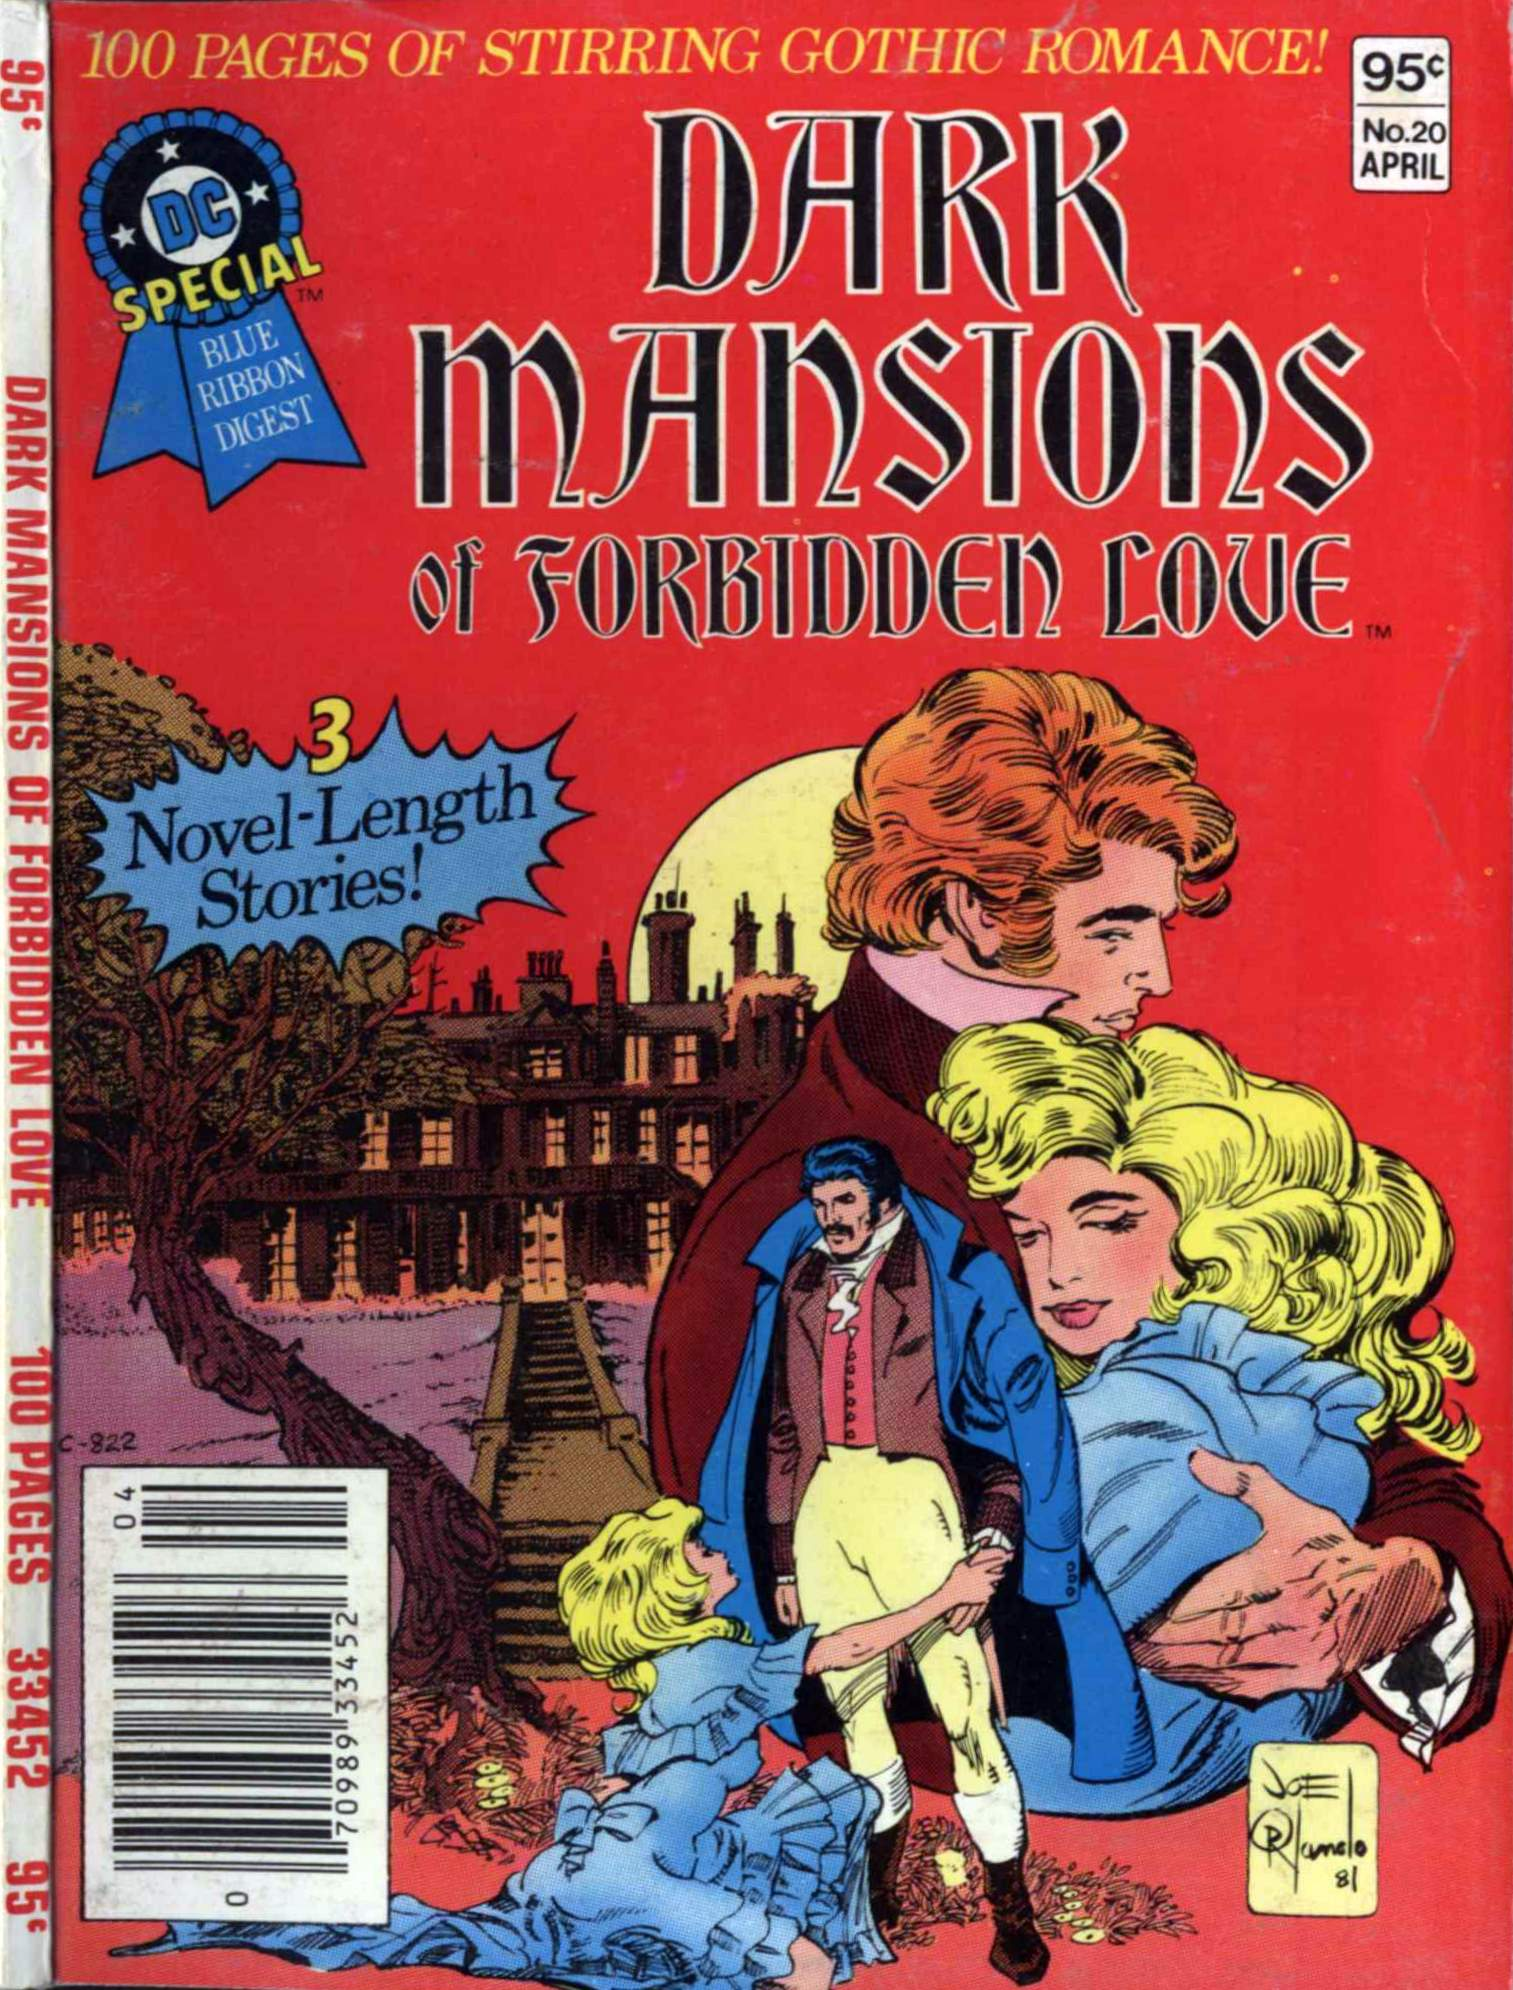 DC Special Blue Ribbon Digest #20: Dark Mansions of Forbidden Love cover by Joe Orlando